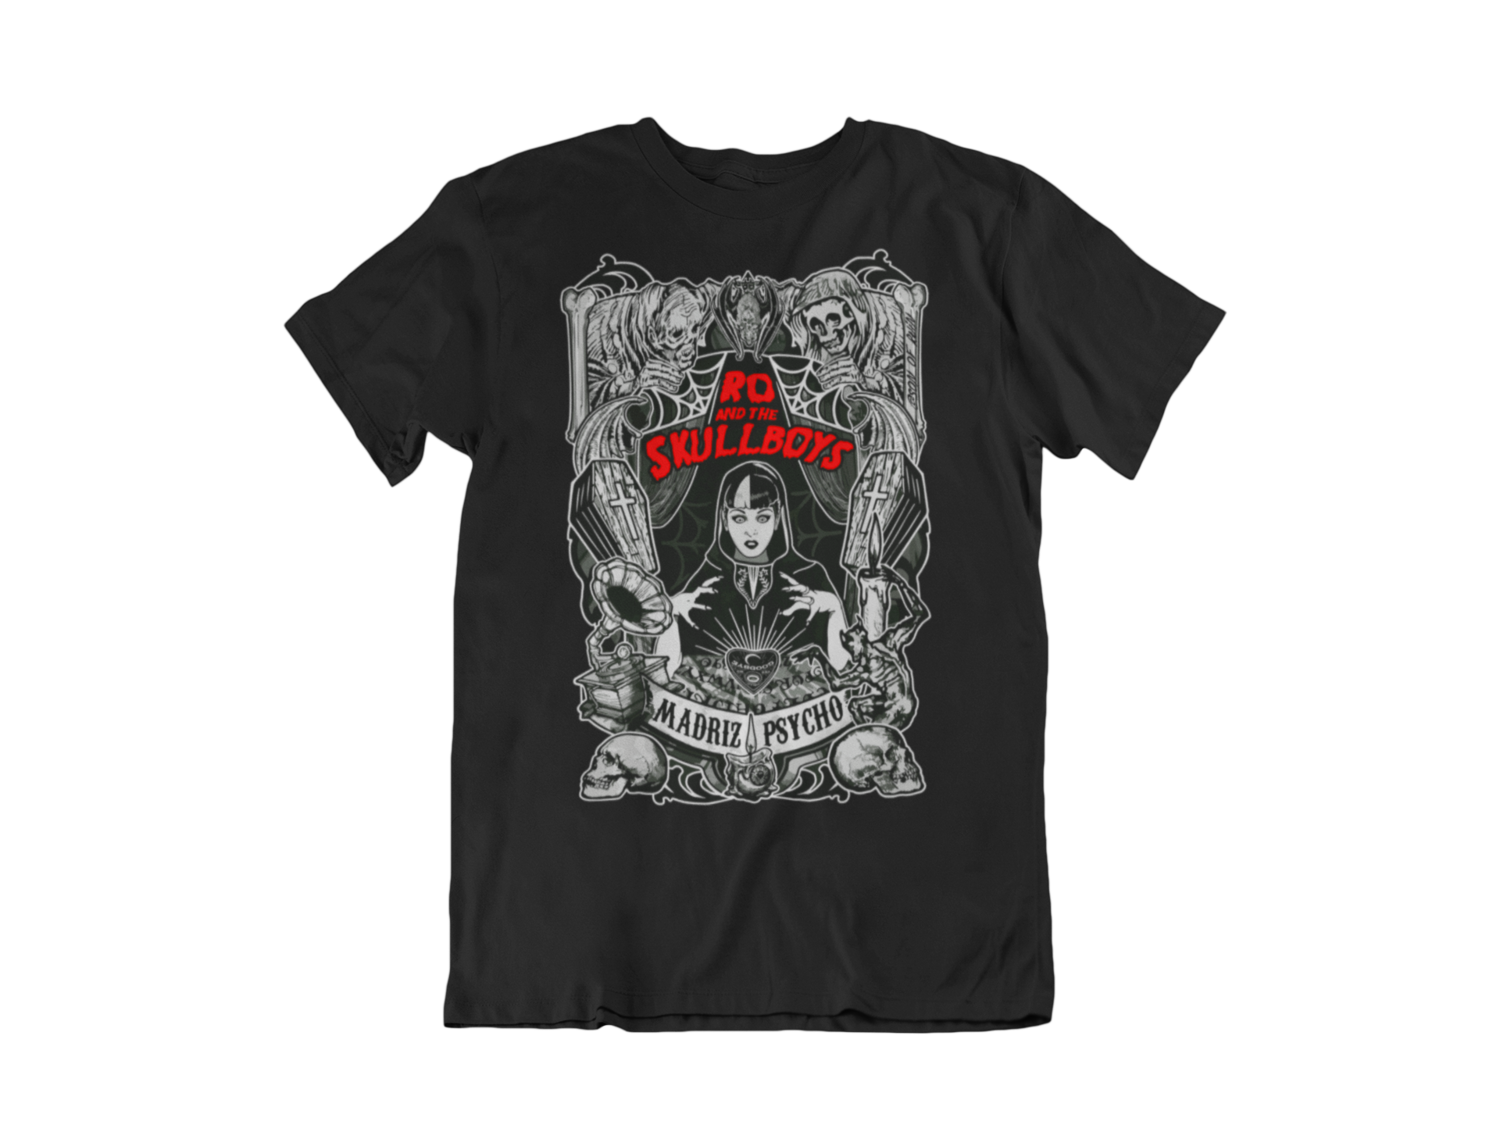 "RO & THE SKULLBOYS ""Madriz Psycho"" T-SHIRT MEN"